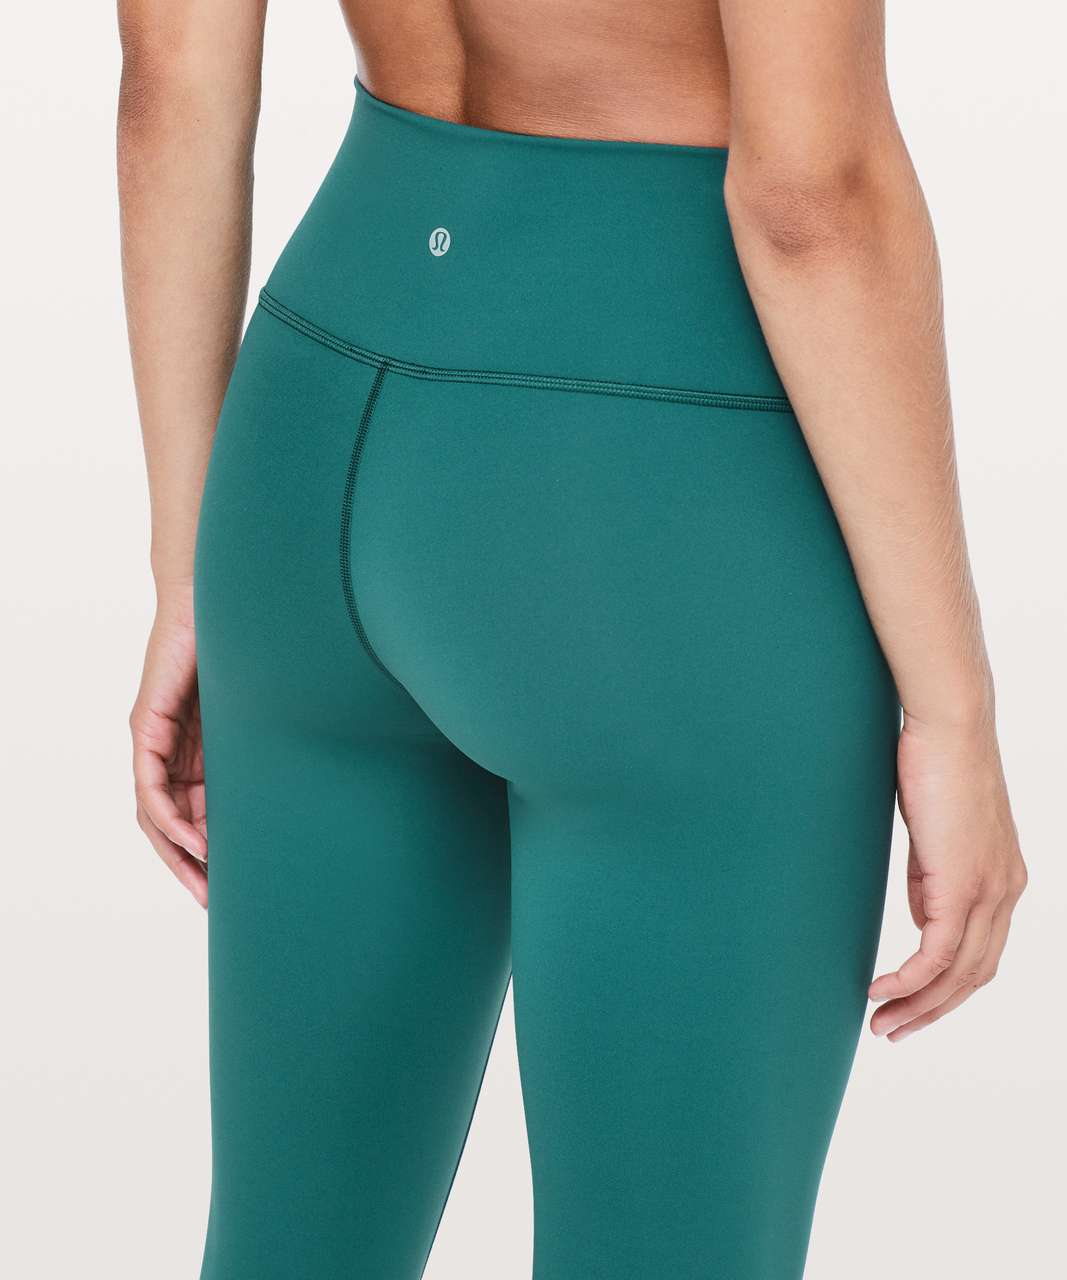 "Lululemon Wunder Under Hi-Rise 7/8 Tight *25"" - Green Jasper"